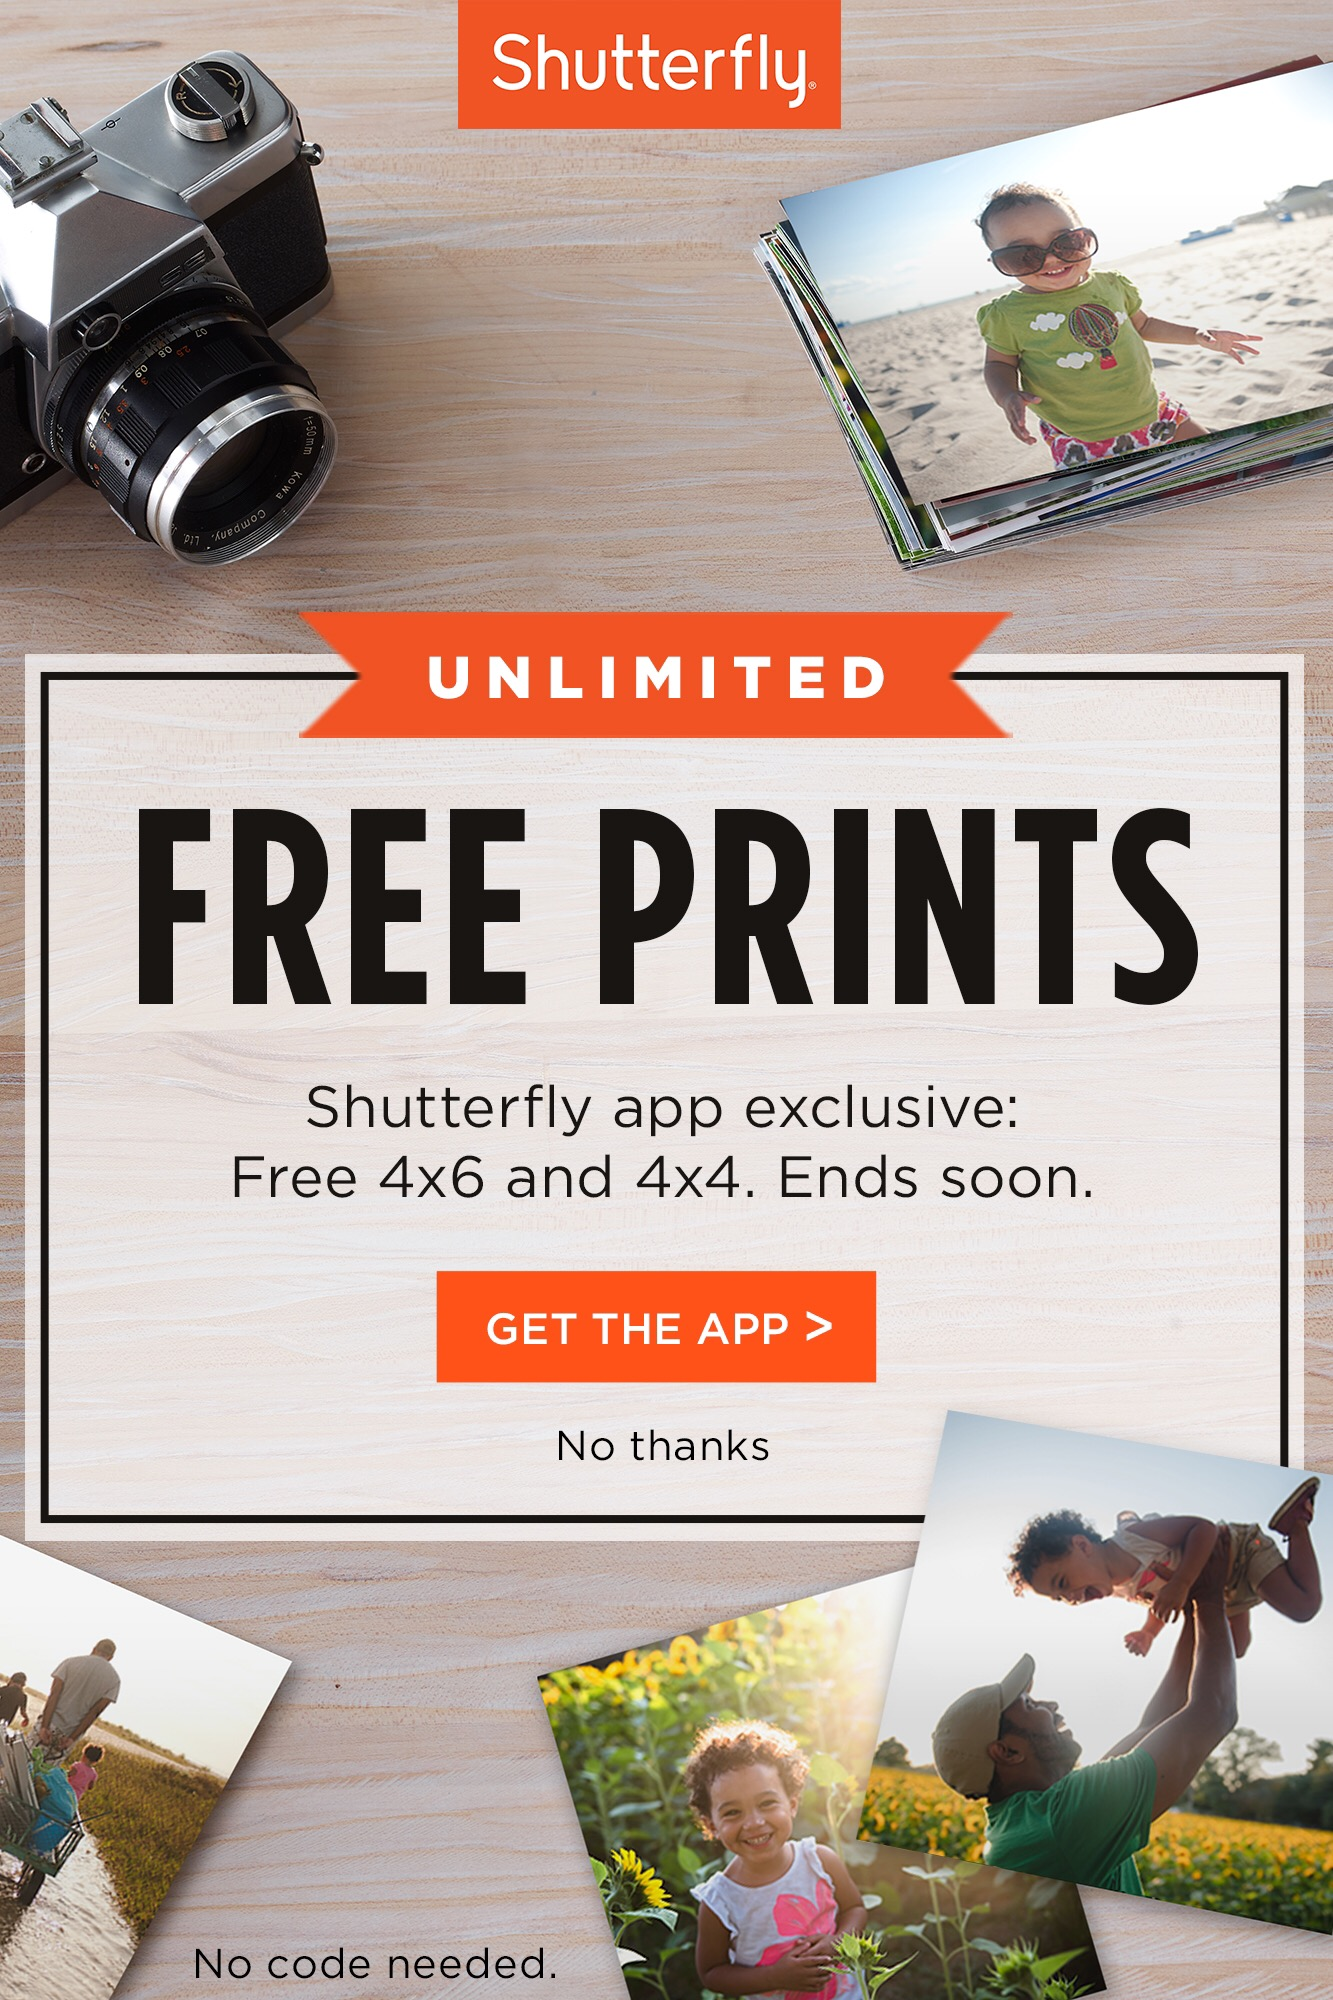 Shutterfly Unlimited Free Photo Prints Can Us Sweet Surprises